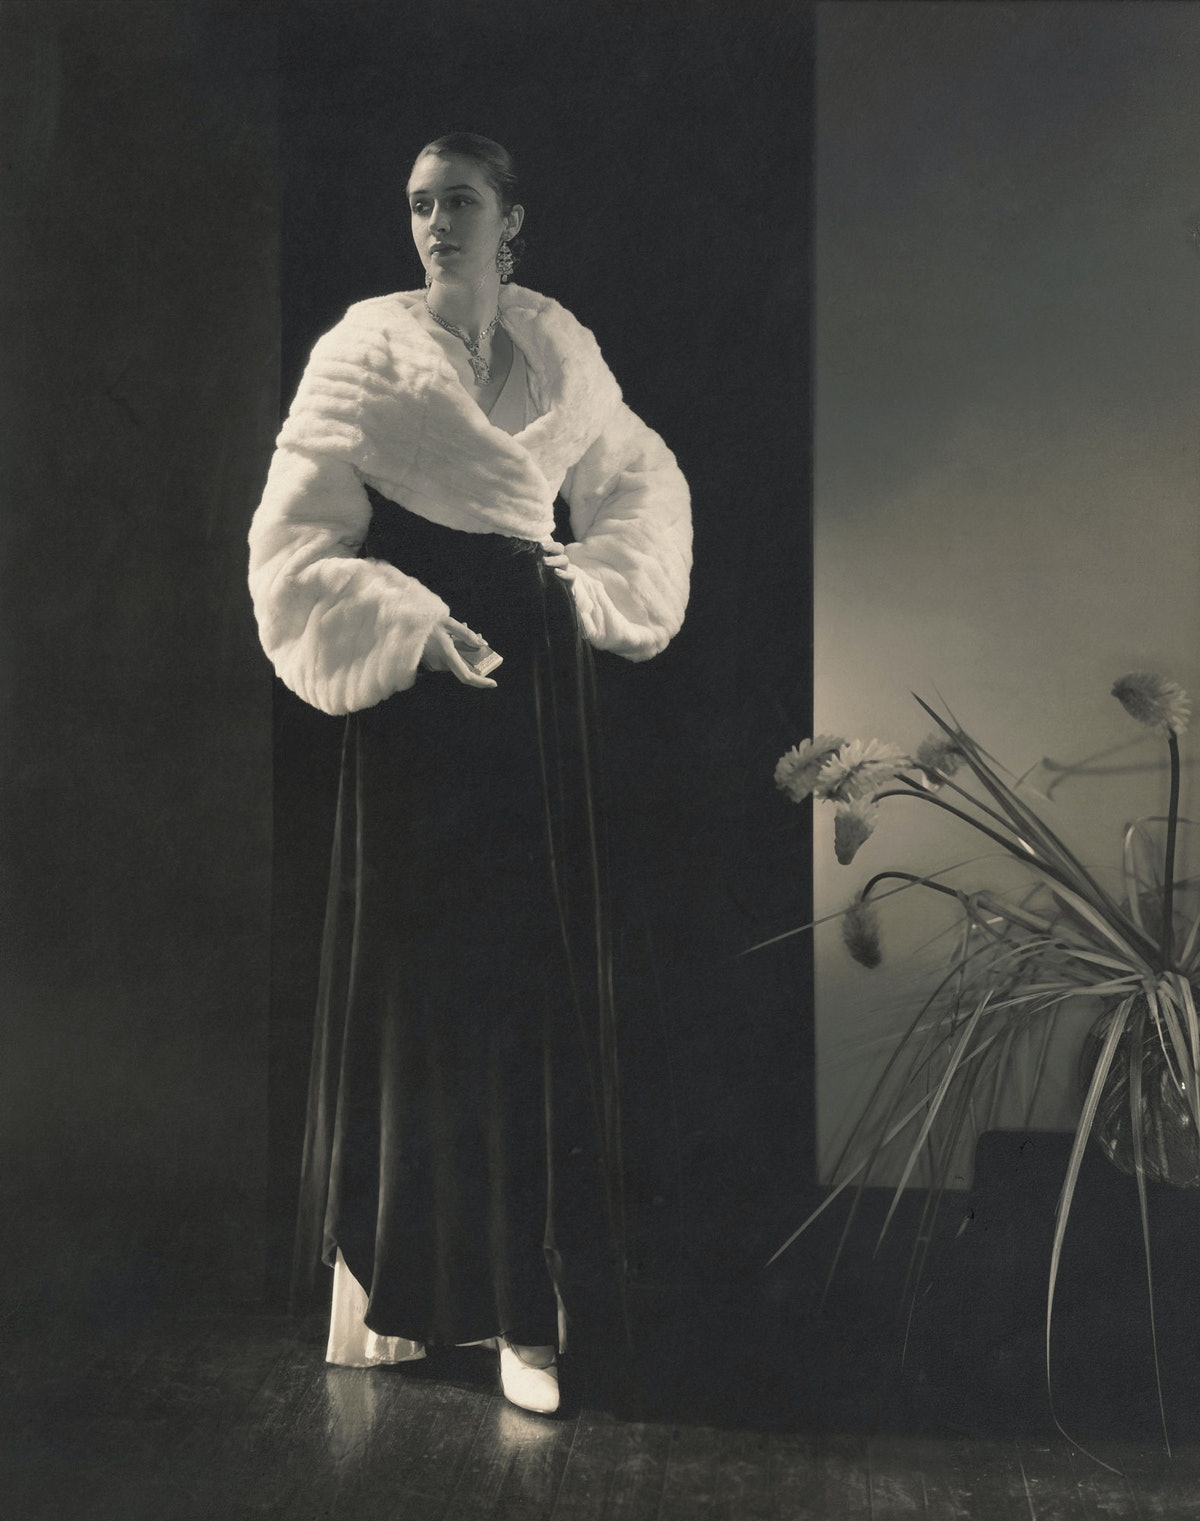 Edward Steichen, *Vogue Fashion (Marion Morehouse in Vionnet evening gown and wrap)*, 1930. Courtesy of Whitney Museum of American Art.